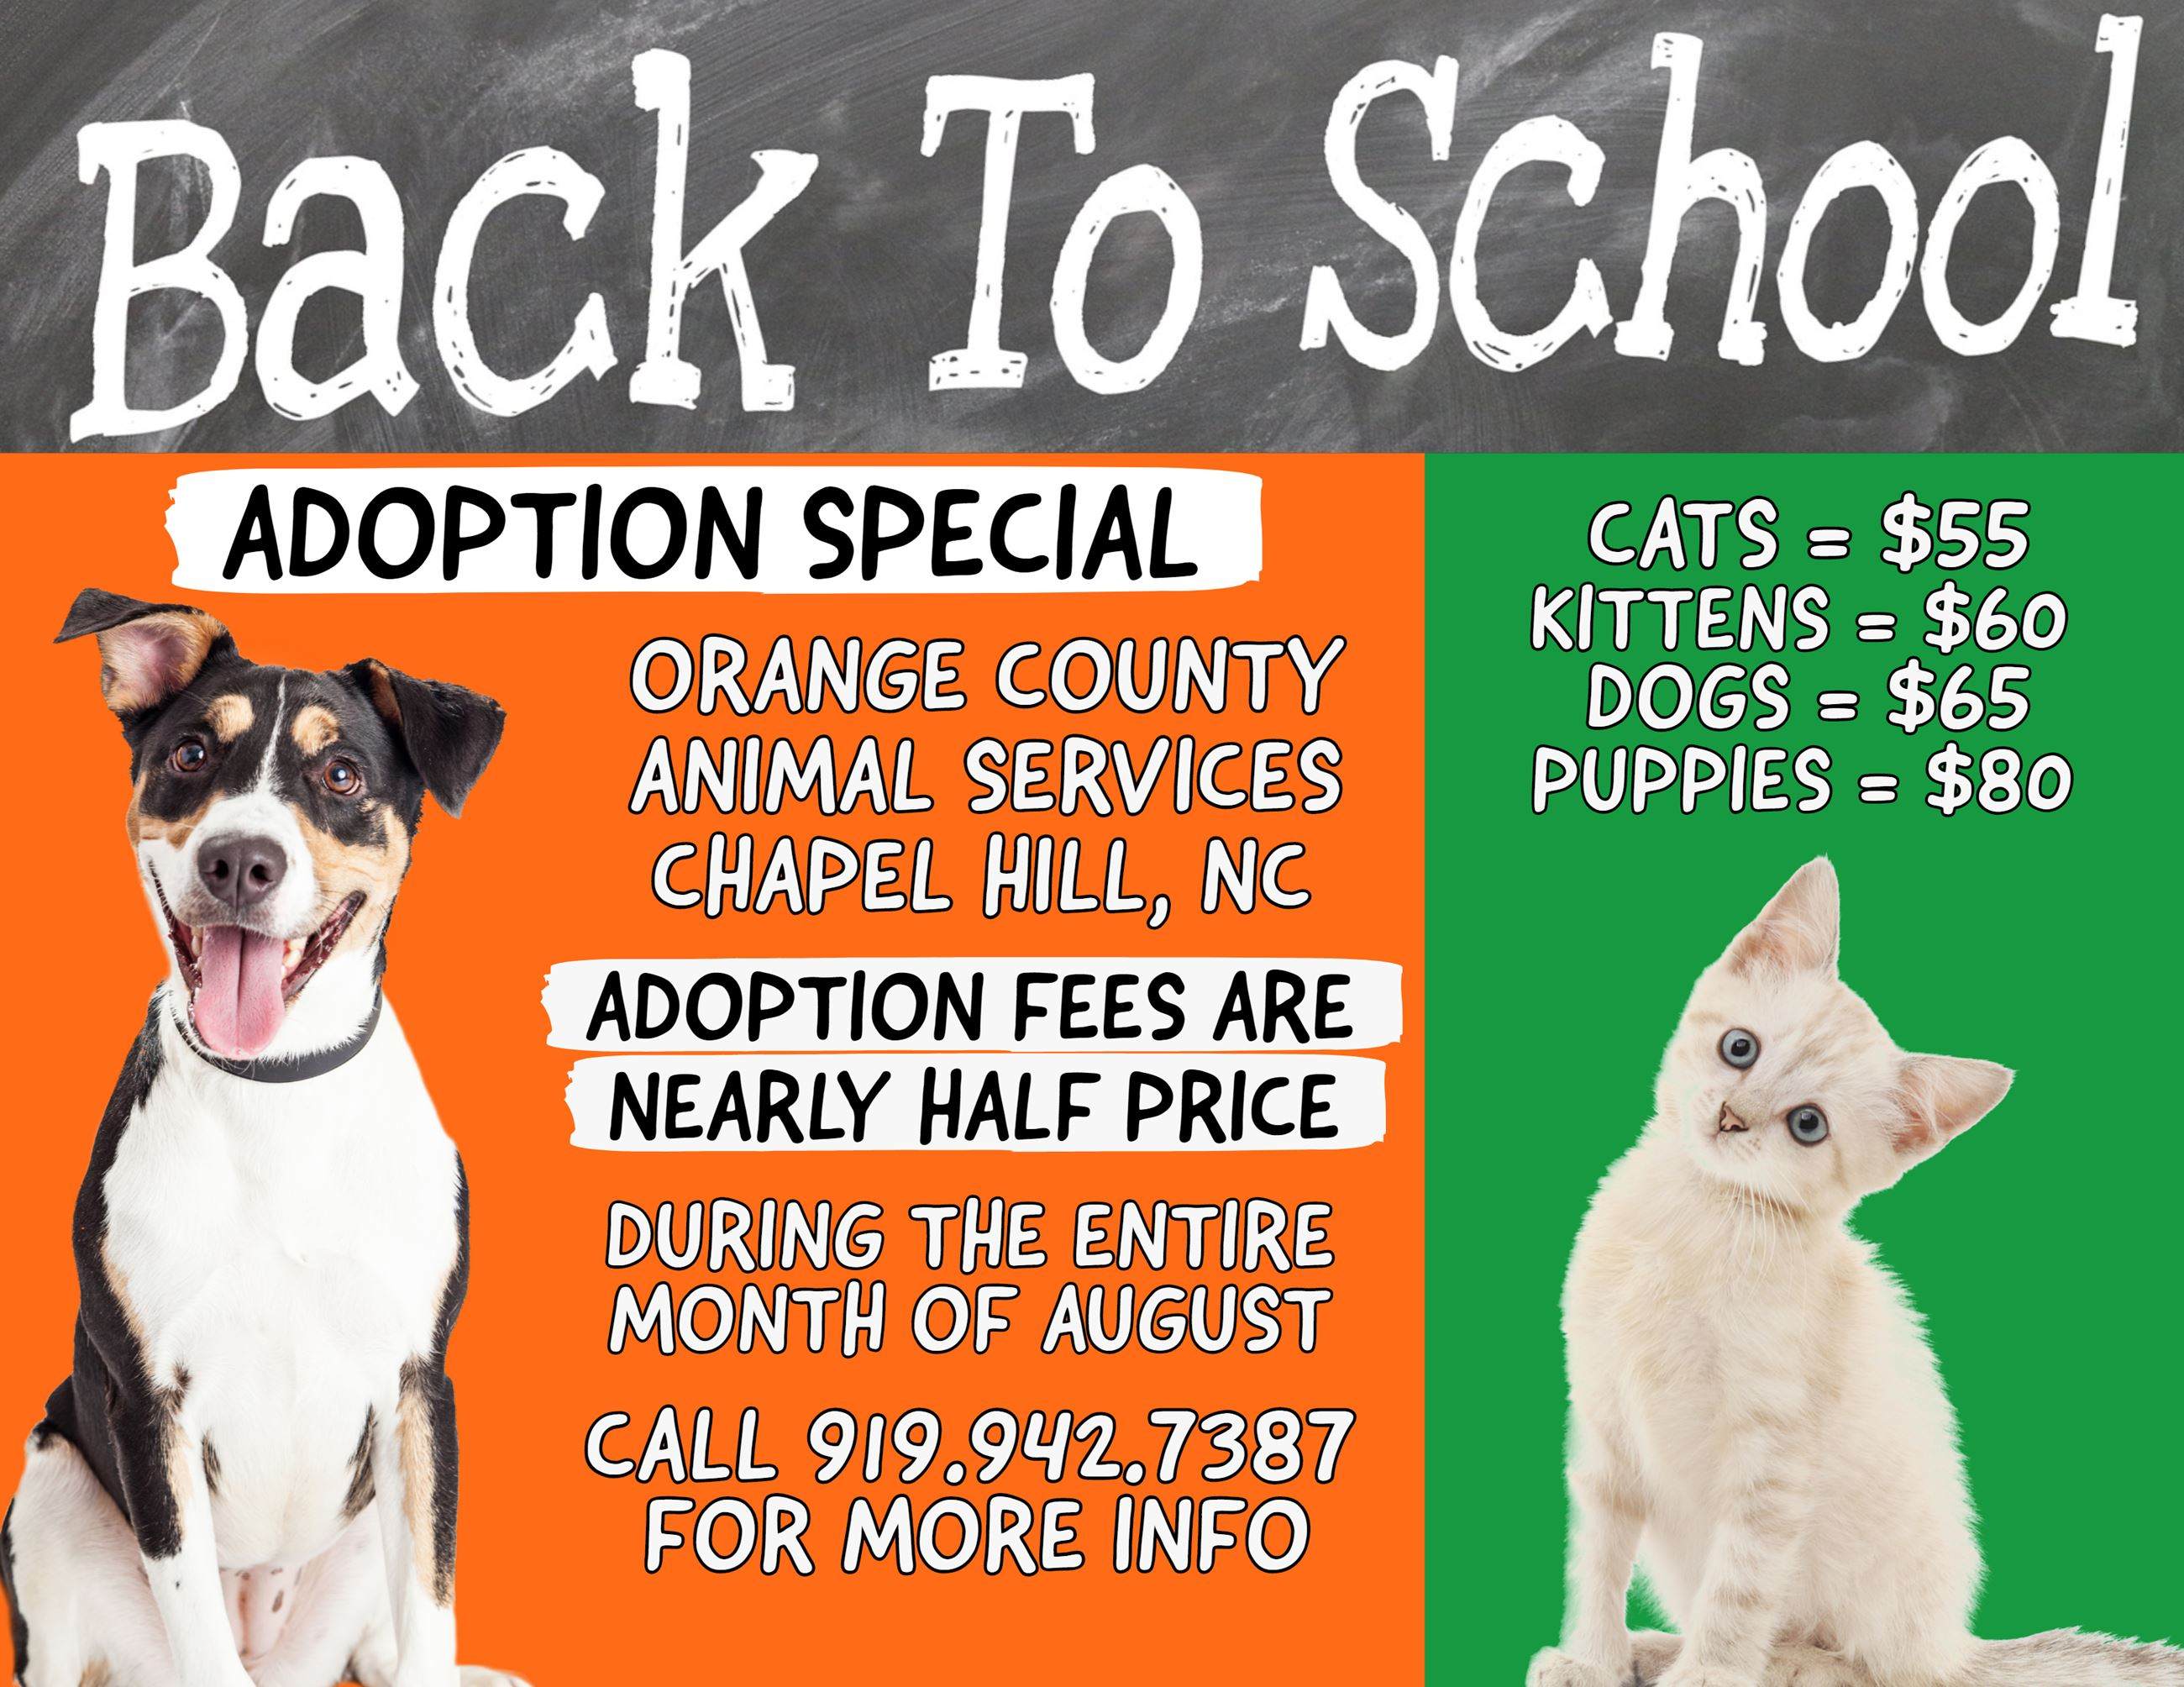 Back To School Adoption Special